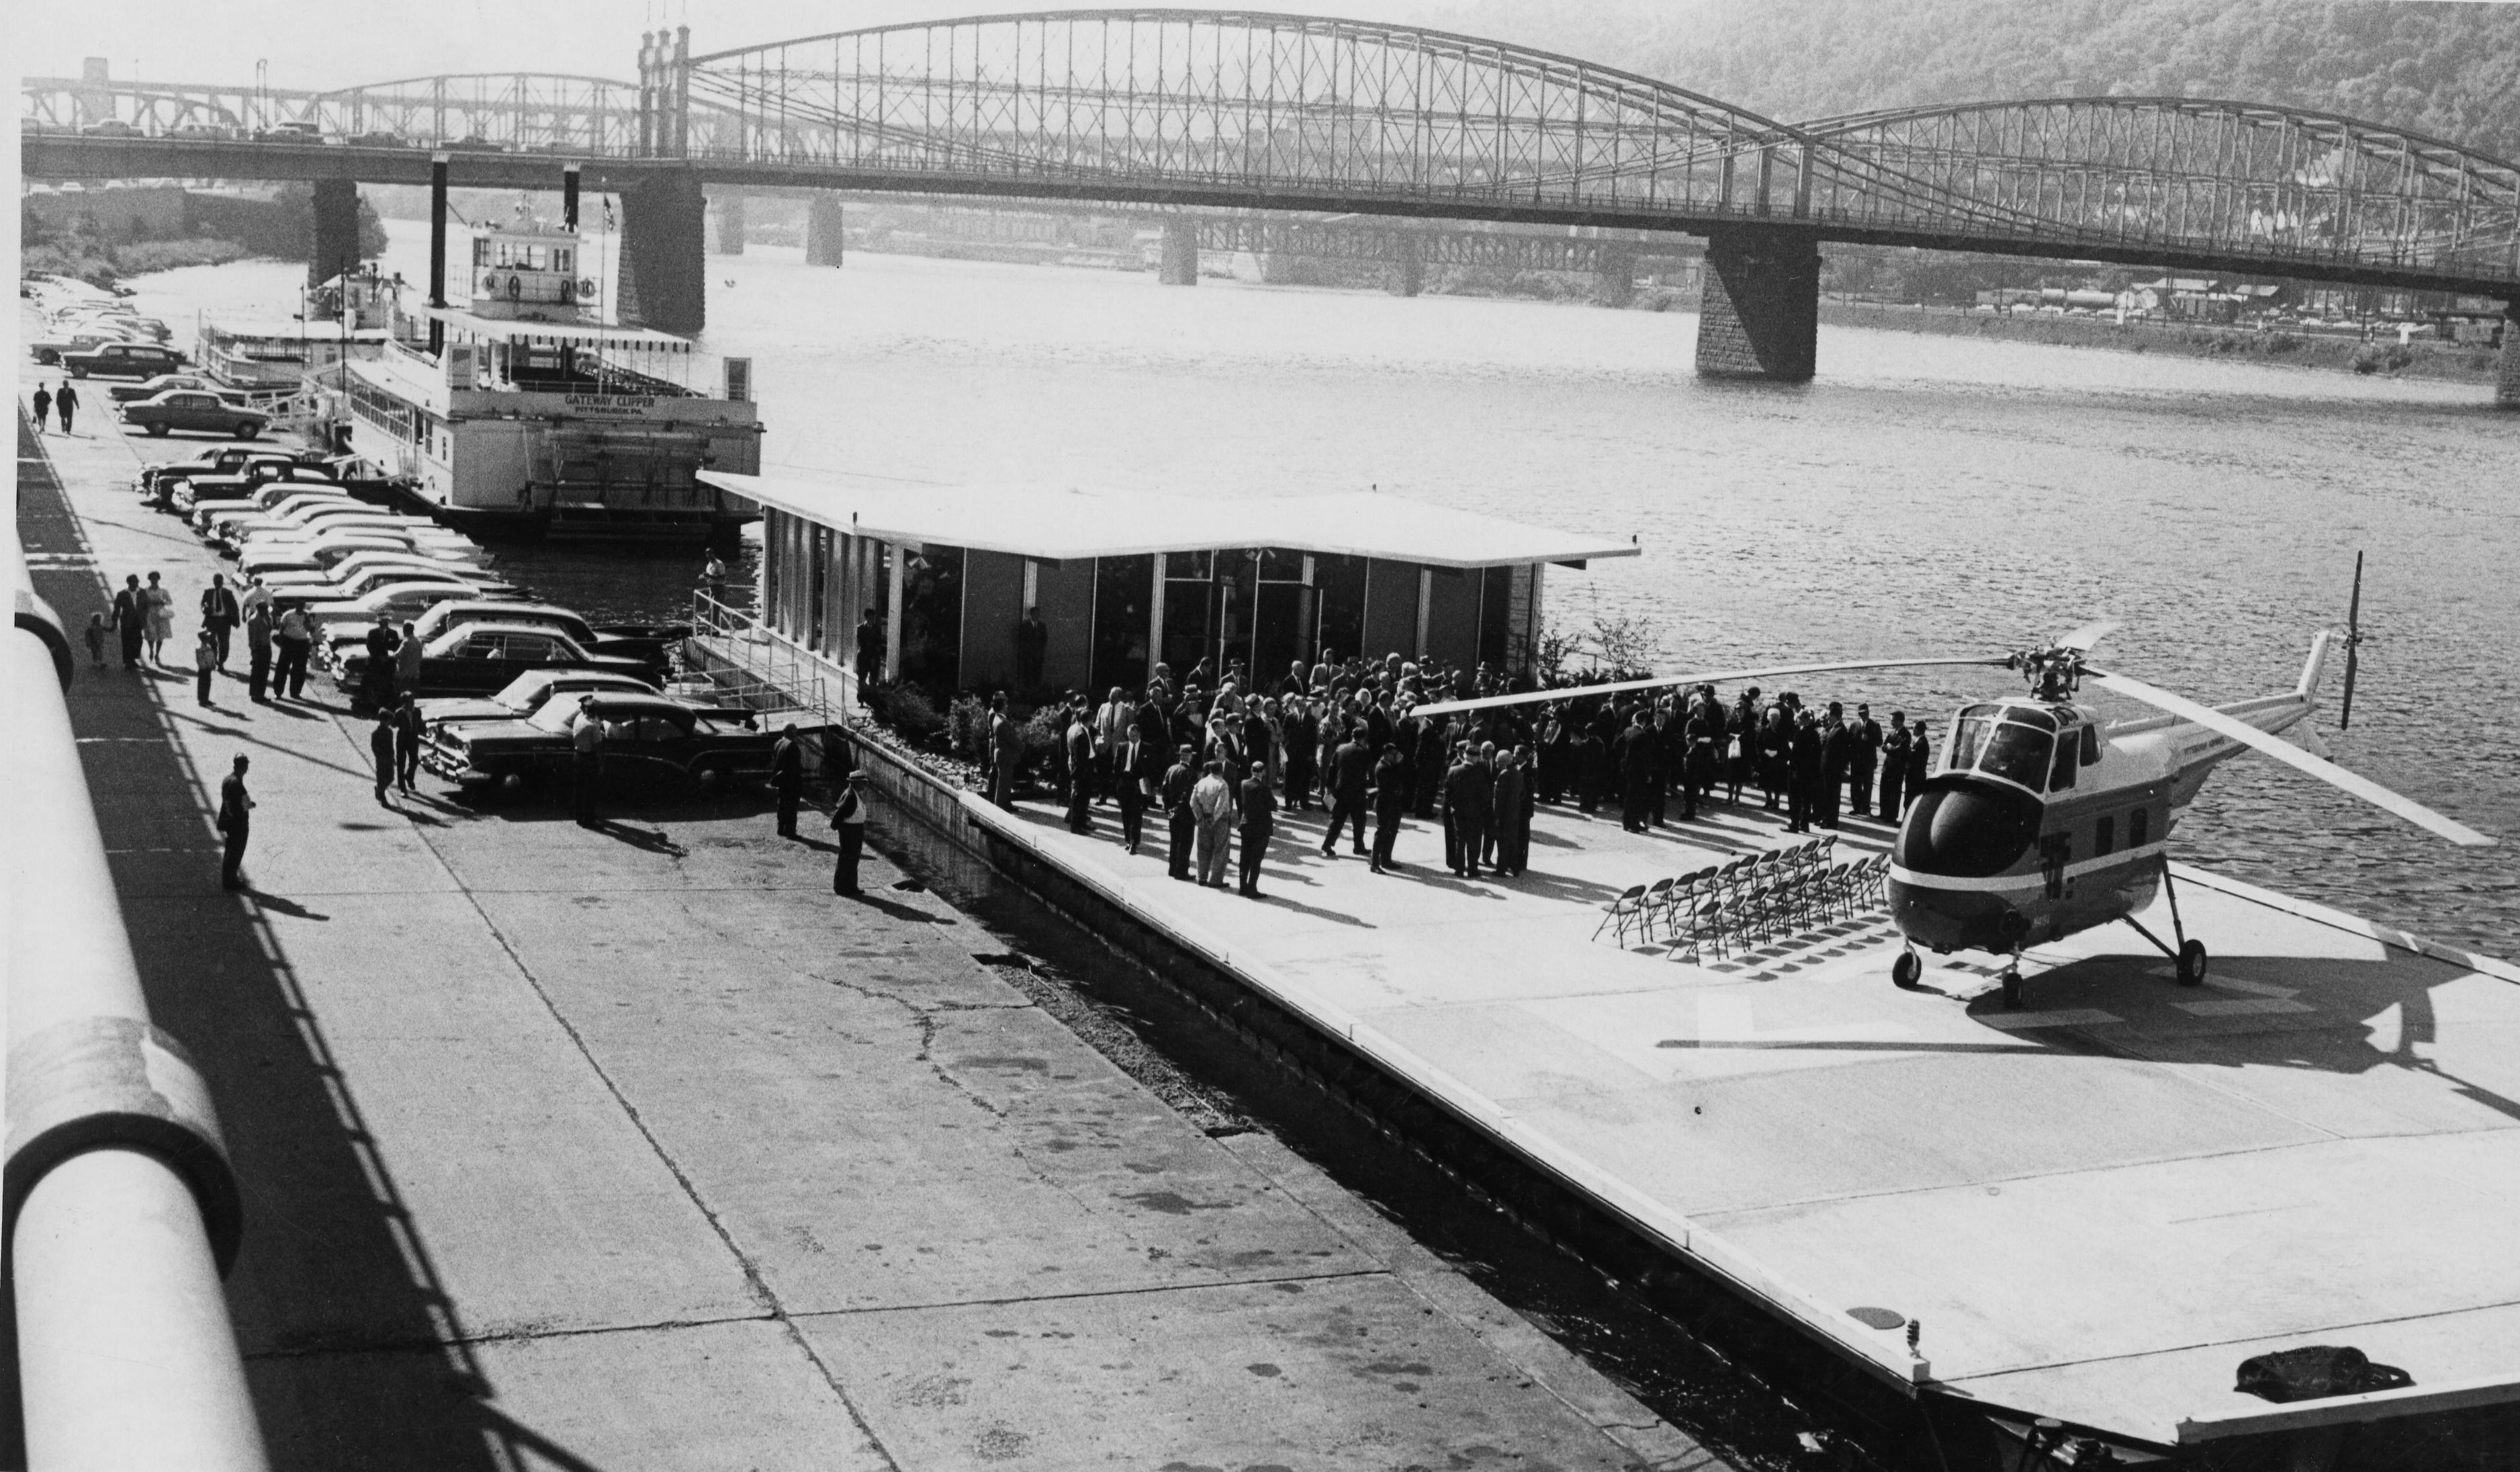 Celebration of the opening of the heliport on the Mon at the foot of Wood Street. (Post-Gazette)